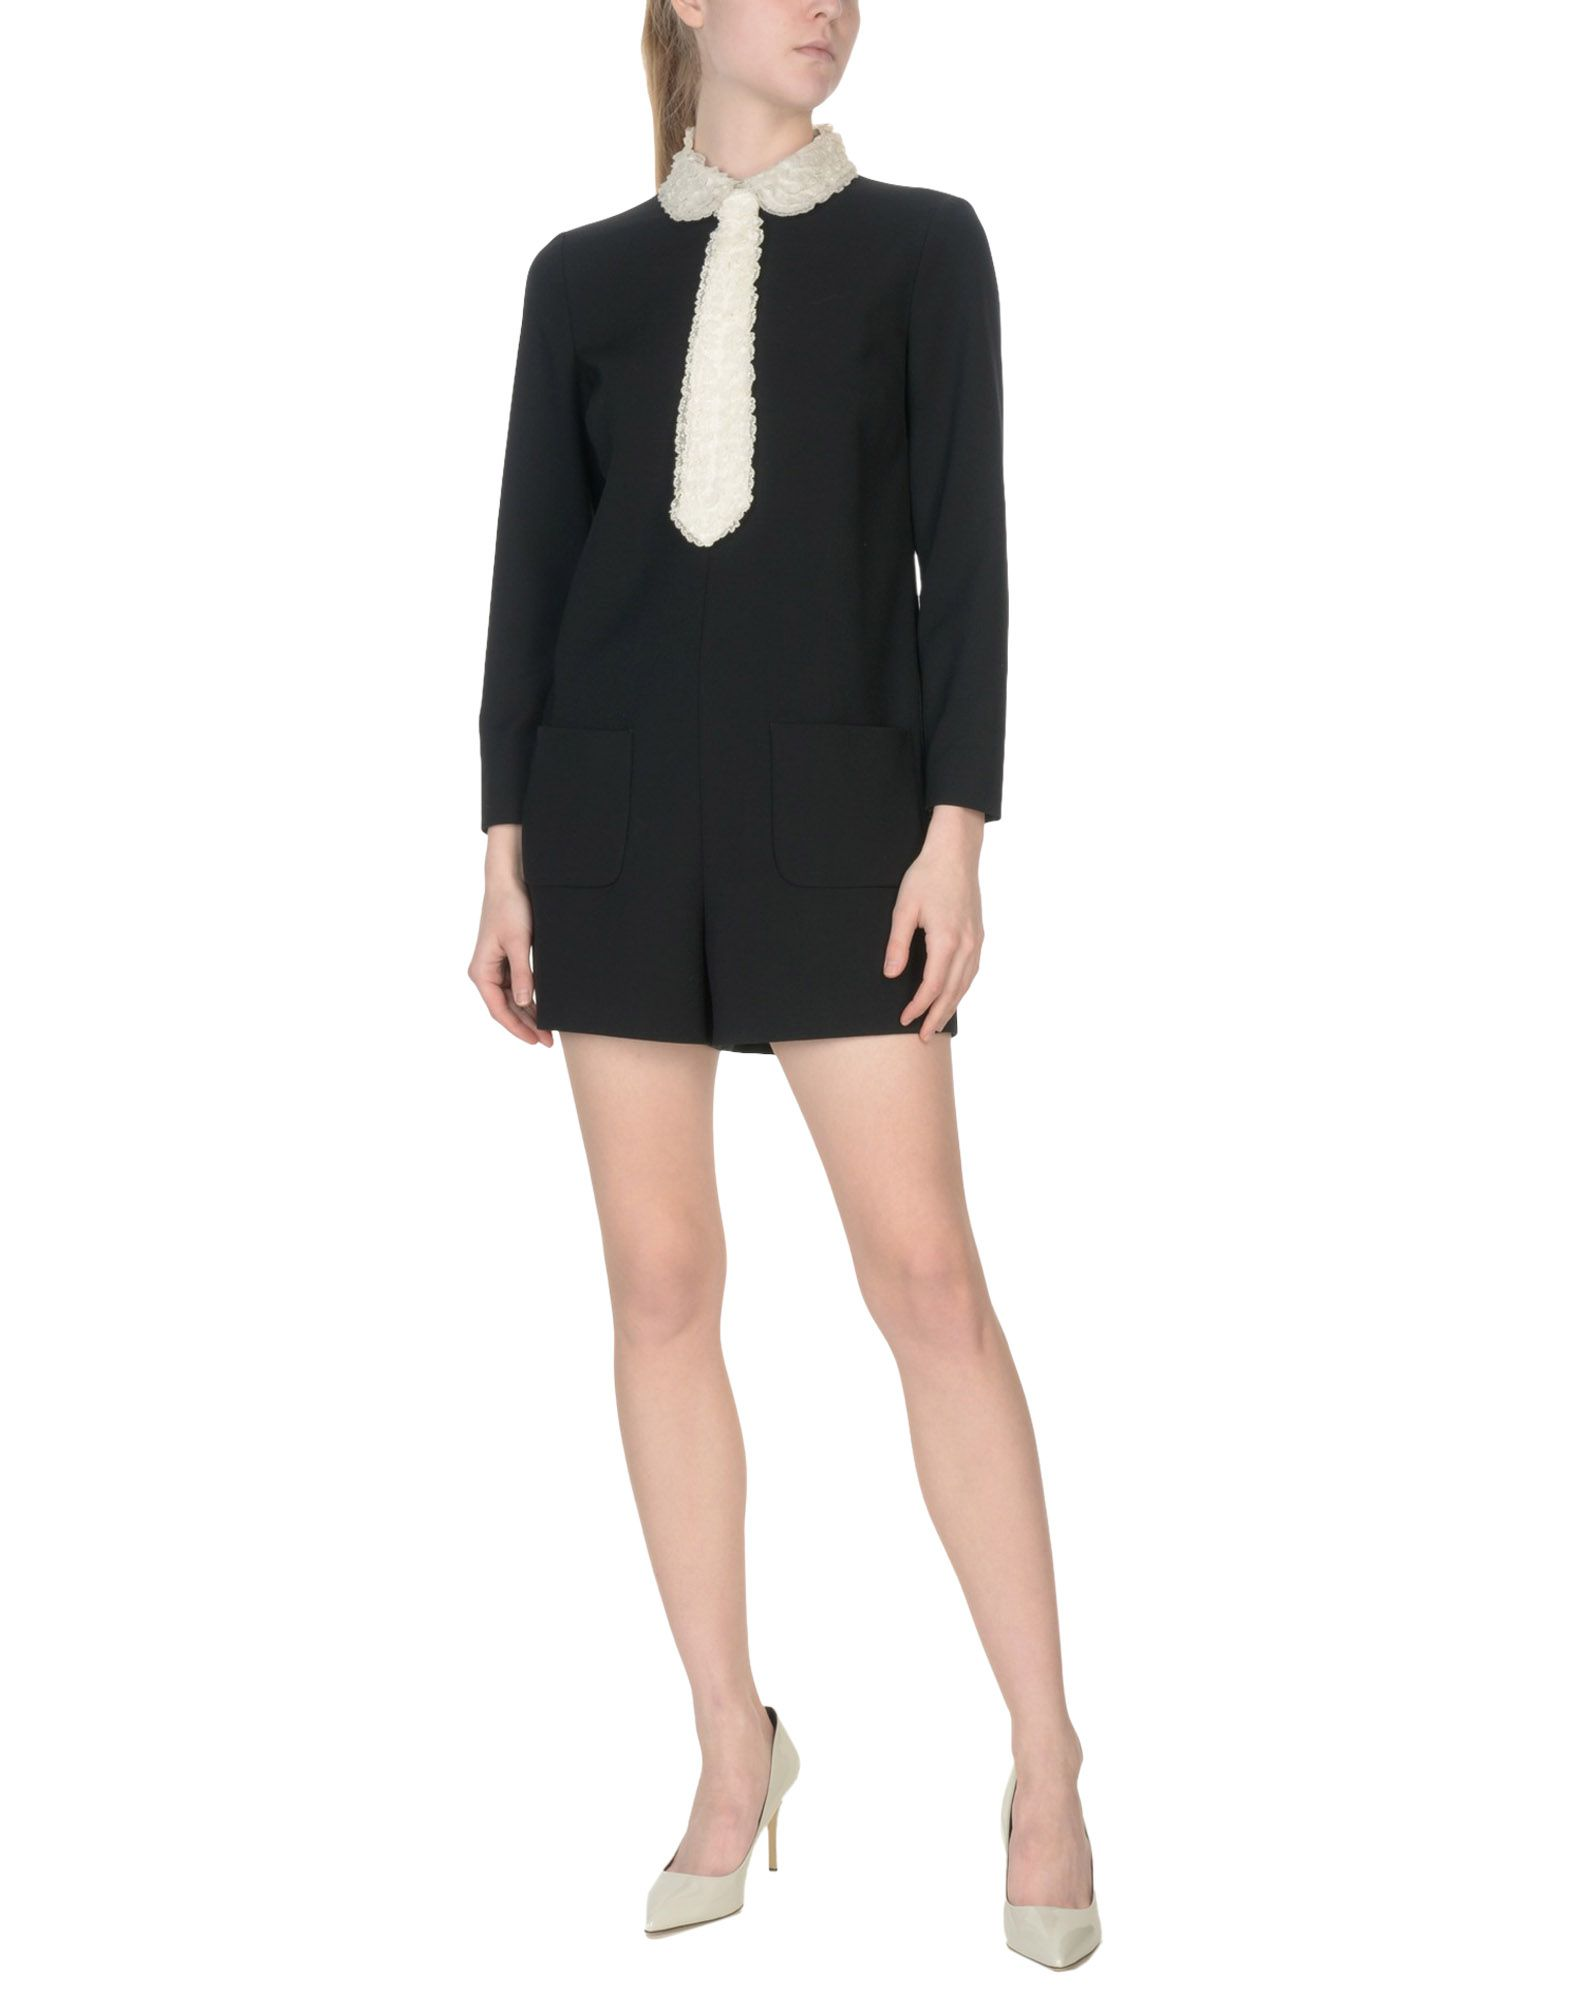 Tuta/One Piece Redvalentino Donna - Acquista online su